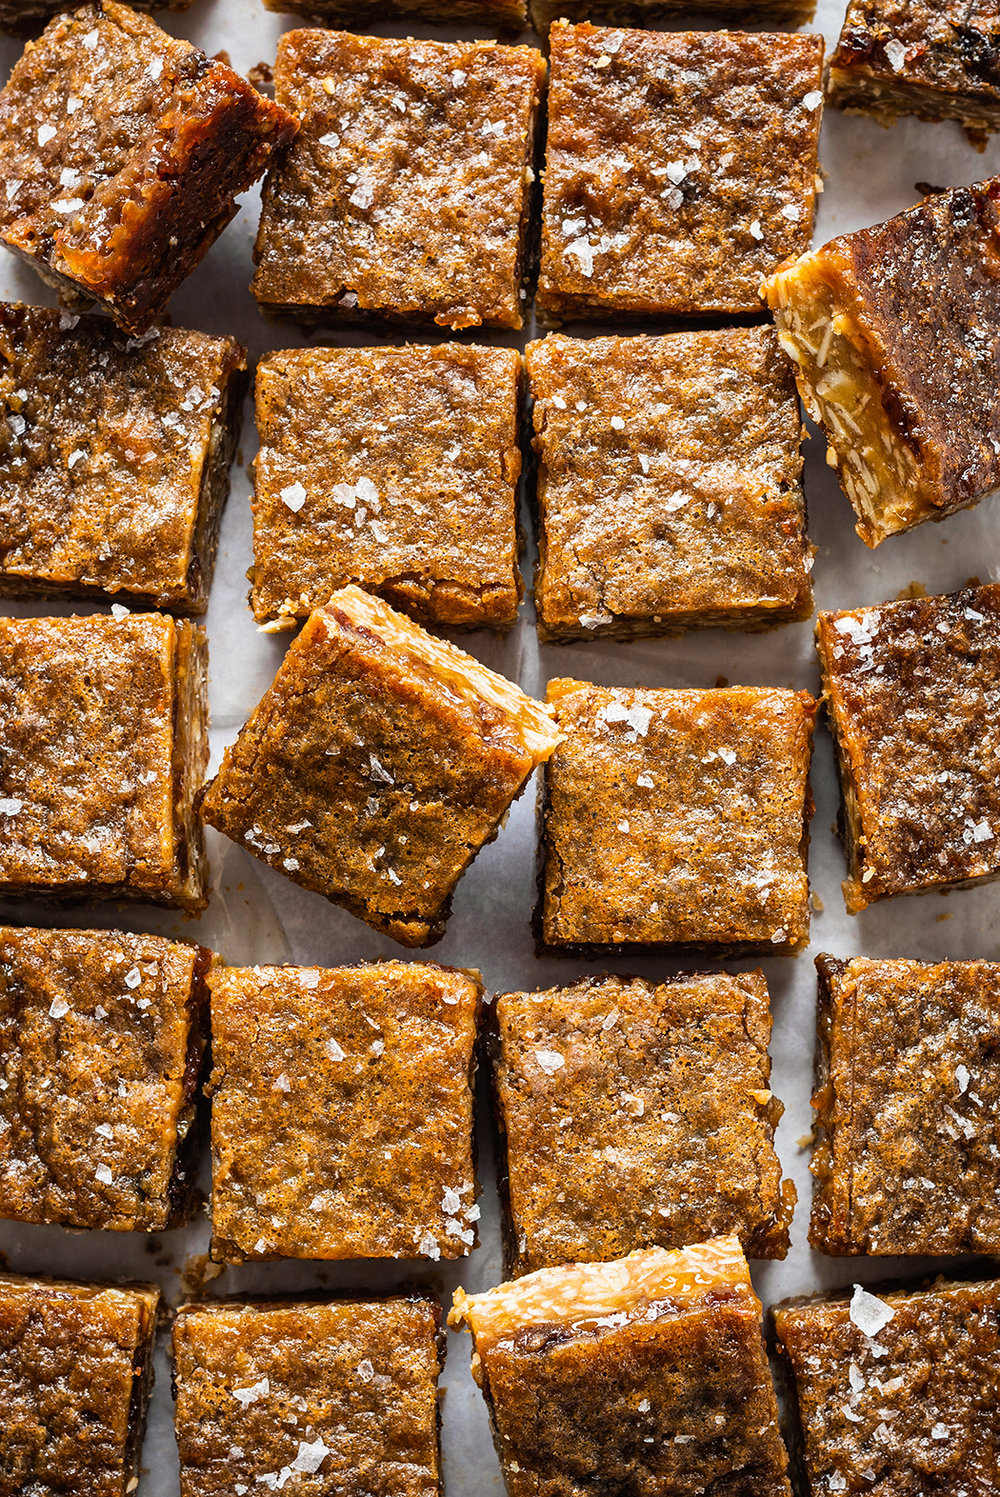 CHEWY OAT & COCONUT BUTTER BARS - A fabulously chewy toffee slice with a great balance of sweet and salty and soft and chewy. I played with this recipe for a few months before I was totally satisfied with it. It is an adaptation of a great New York Times recipe but I am partial to a chewy base!